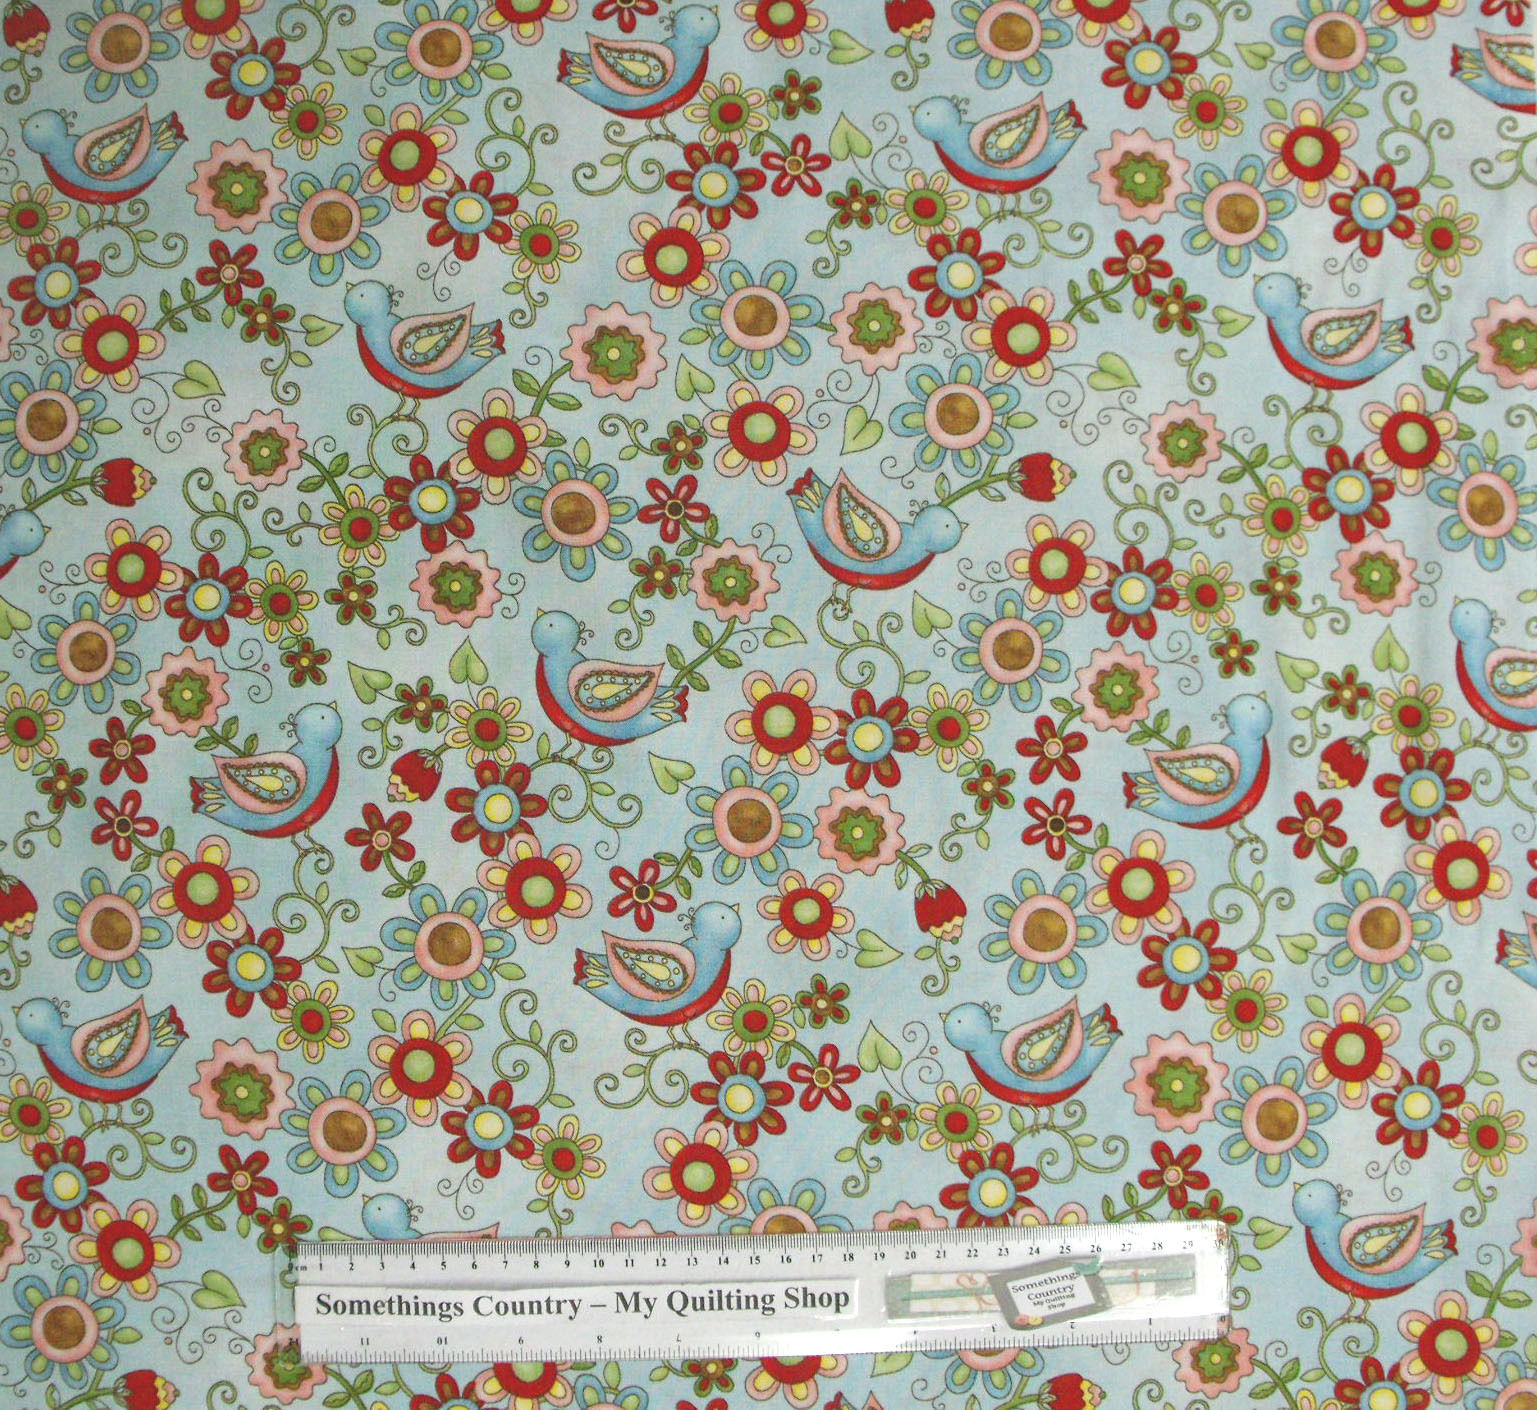 Patchwork quilting sewing fabric little birdie floral